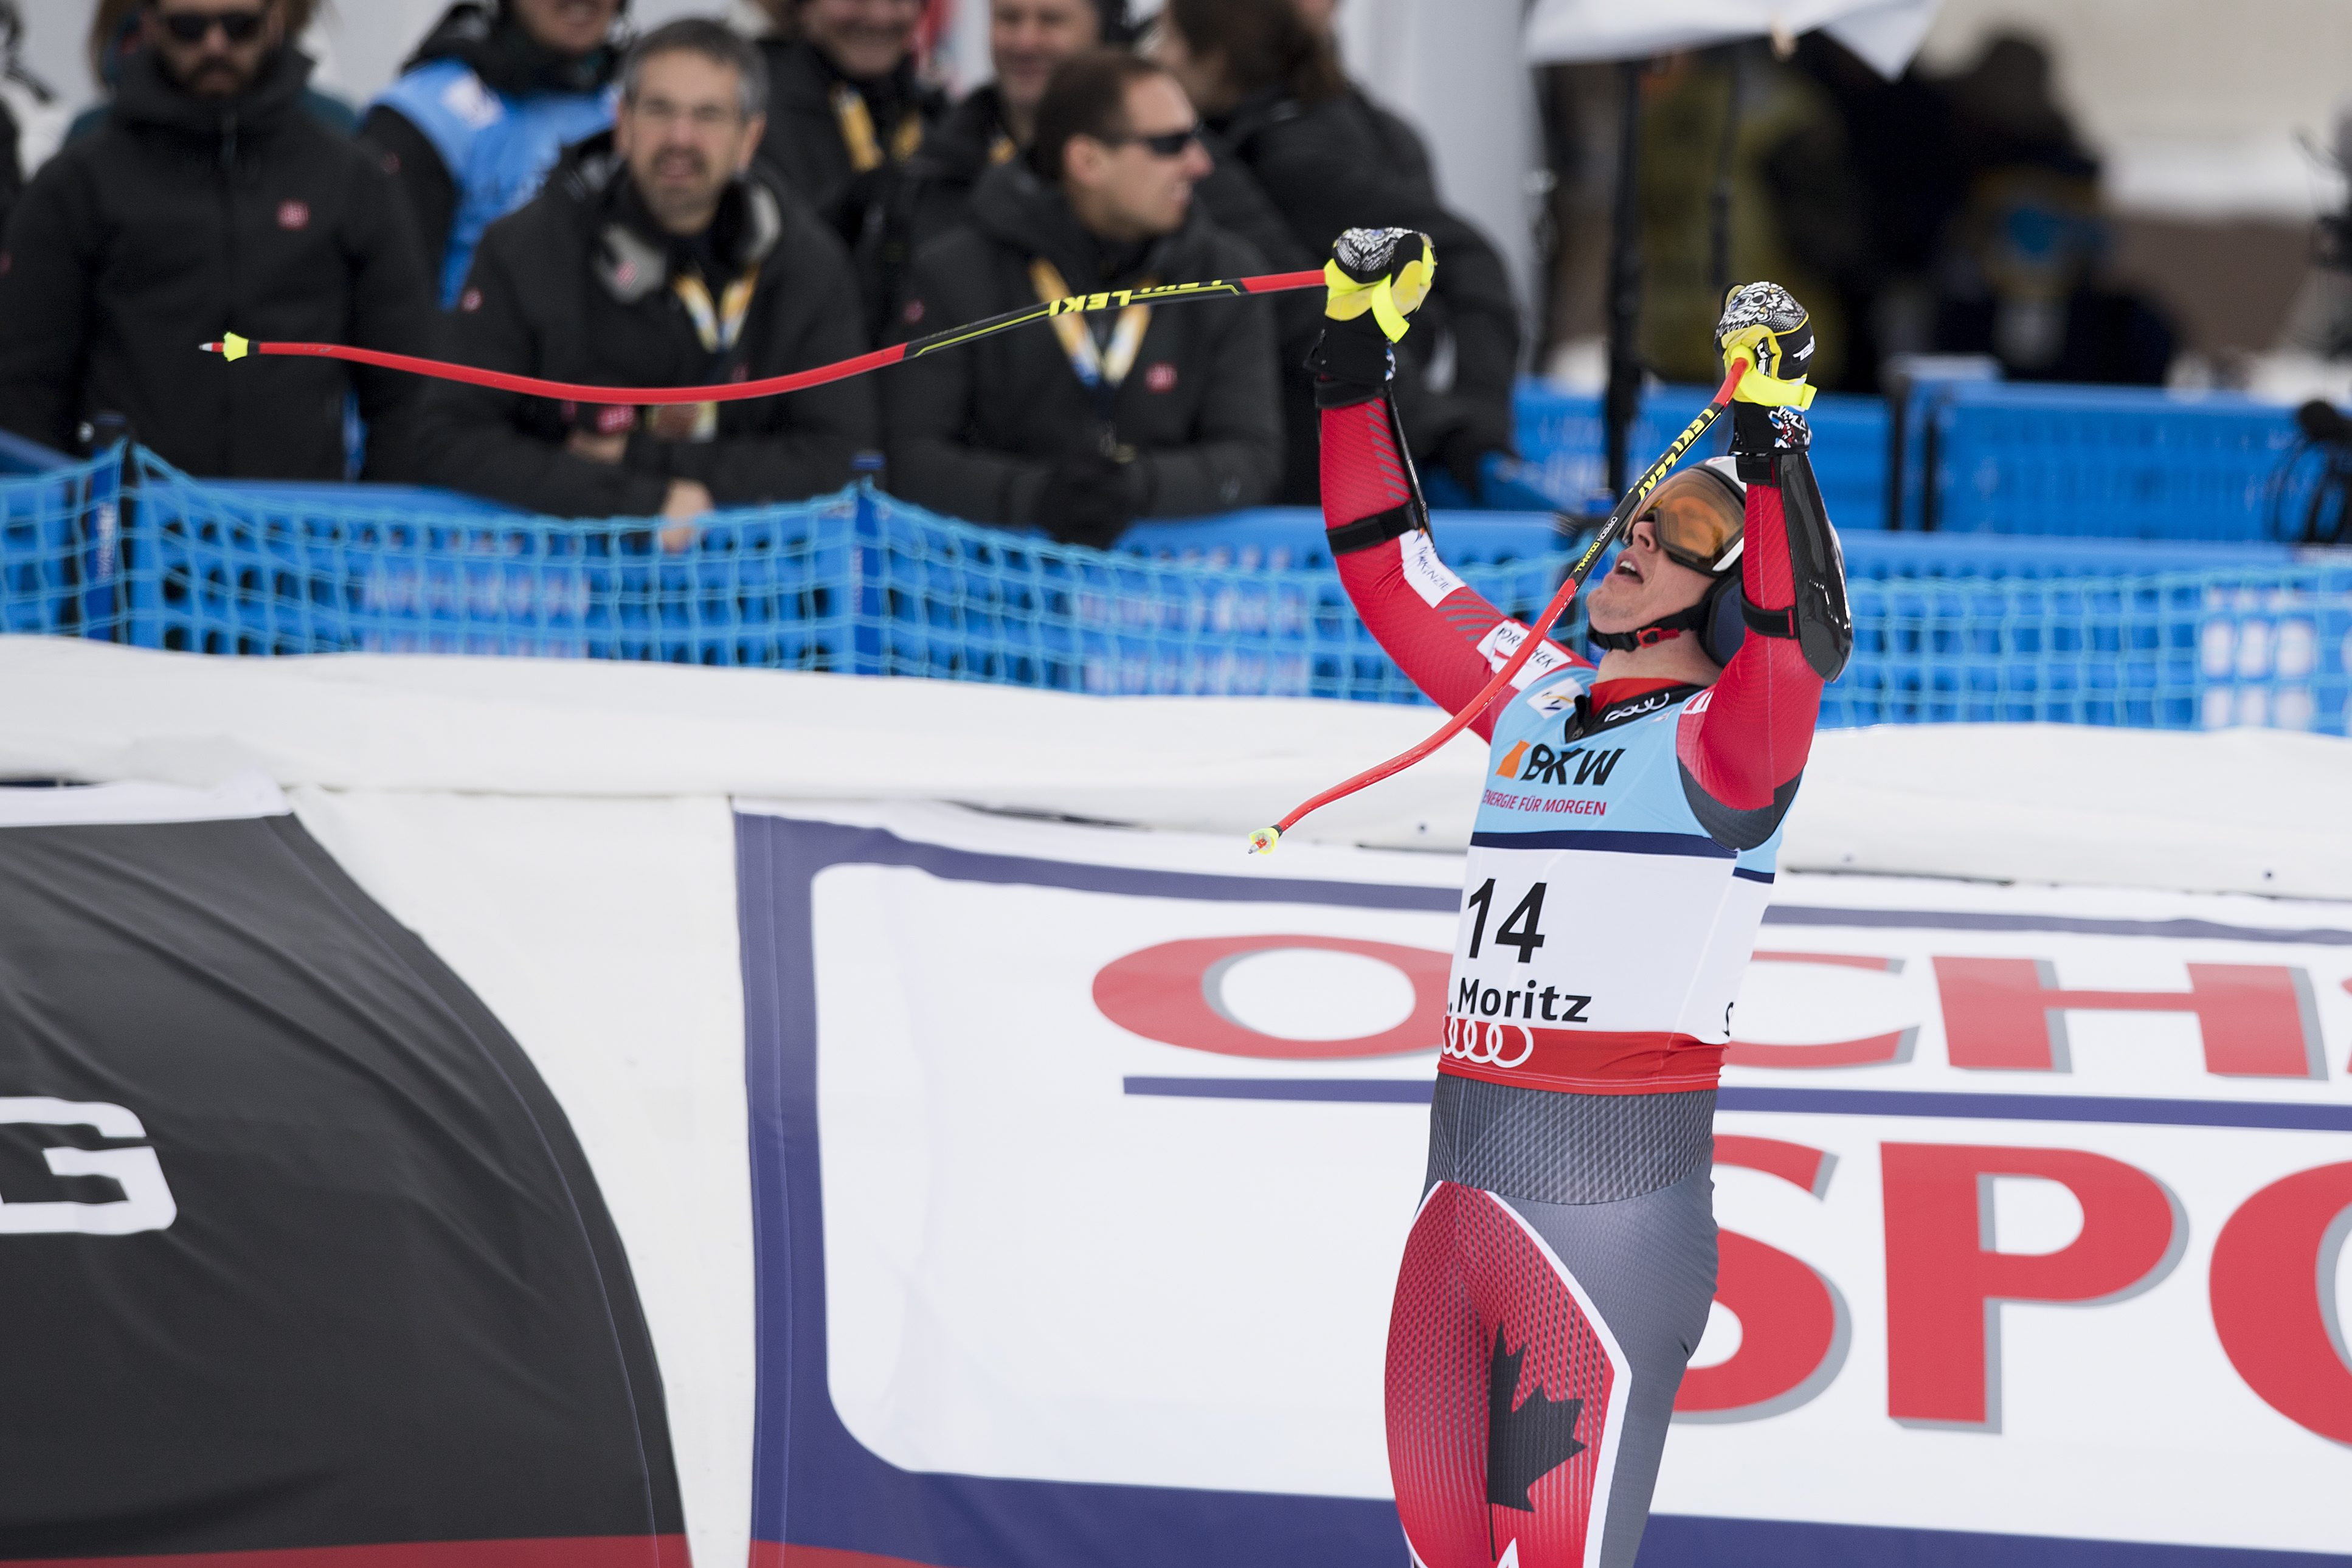 Erik Guay of Canada reacts in the finish area during the men's Super-G race at the 2017 Alpine Skiing World Championships in St. Moritz, Switzerland, Wednesday, Feb. 8, 2017. (Alexandra Wey/Keystone via AP)